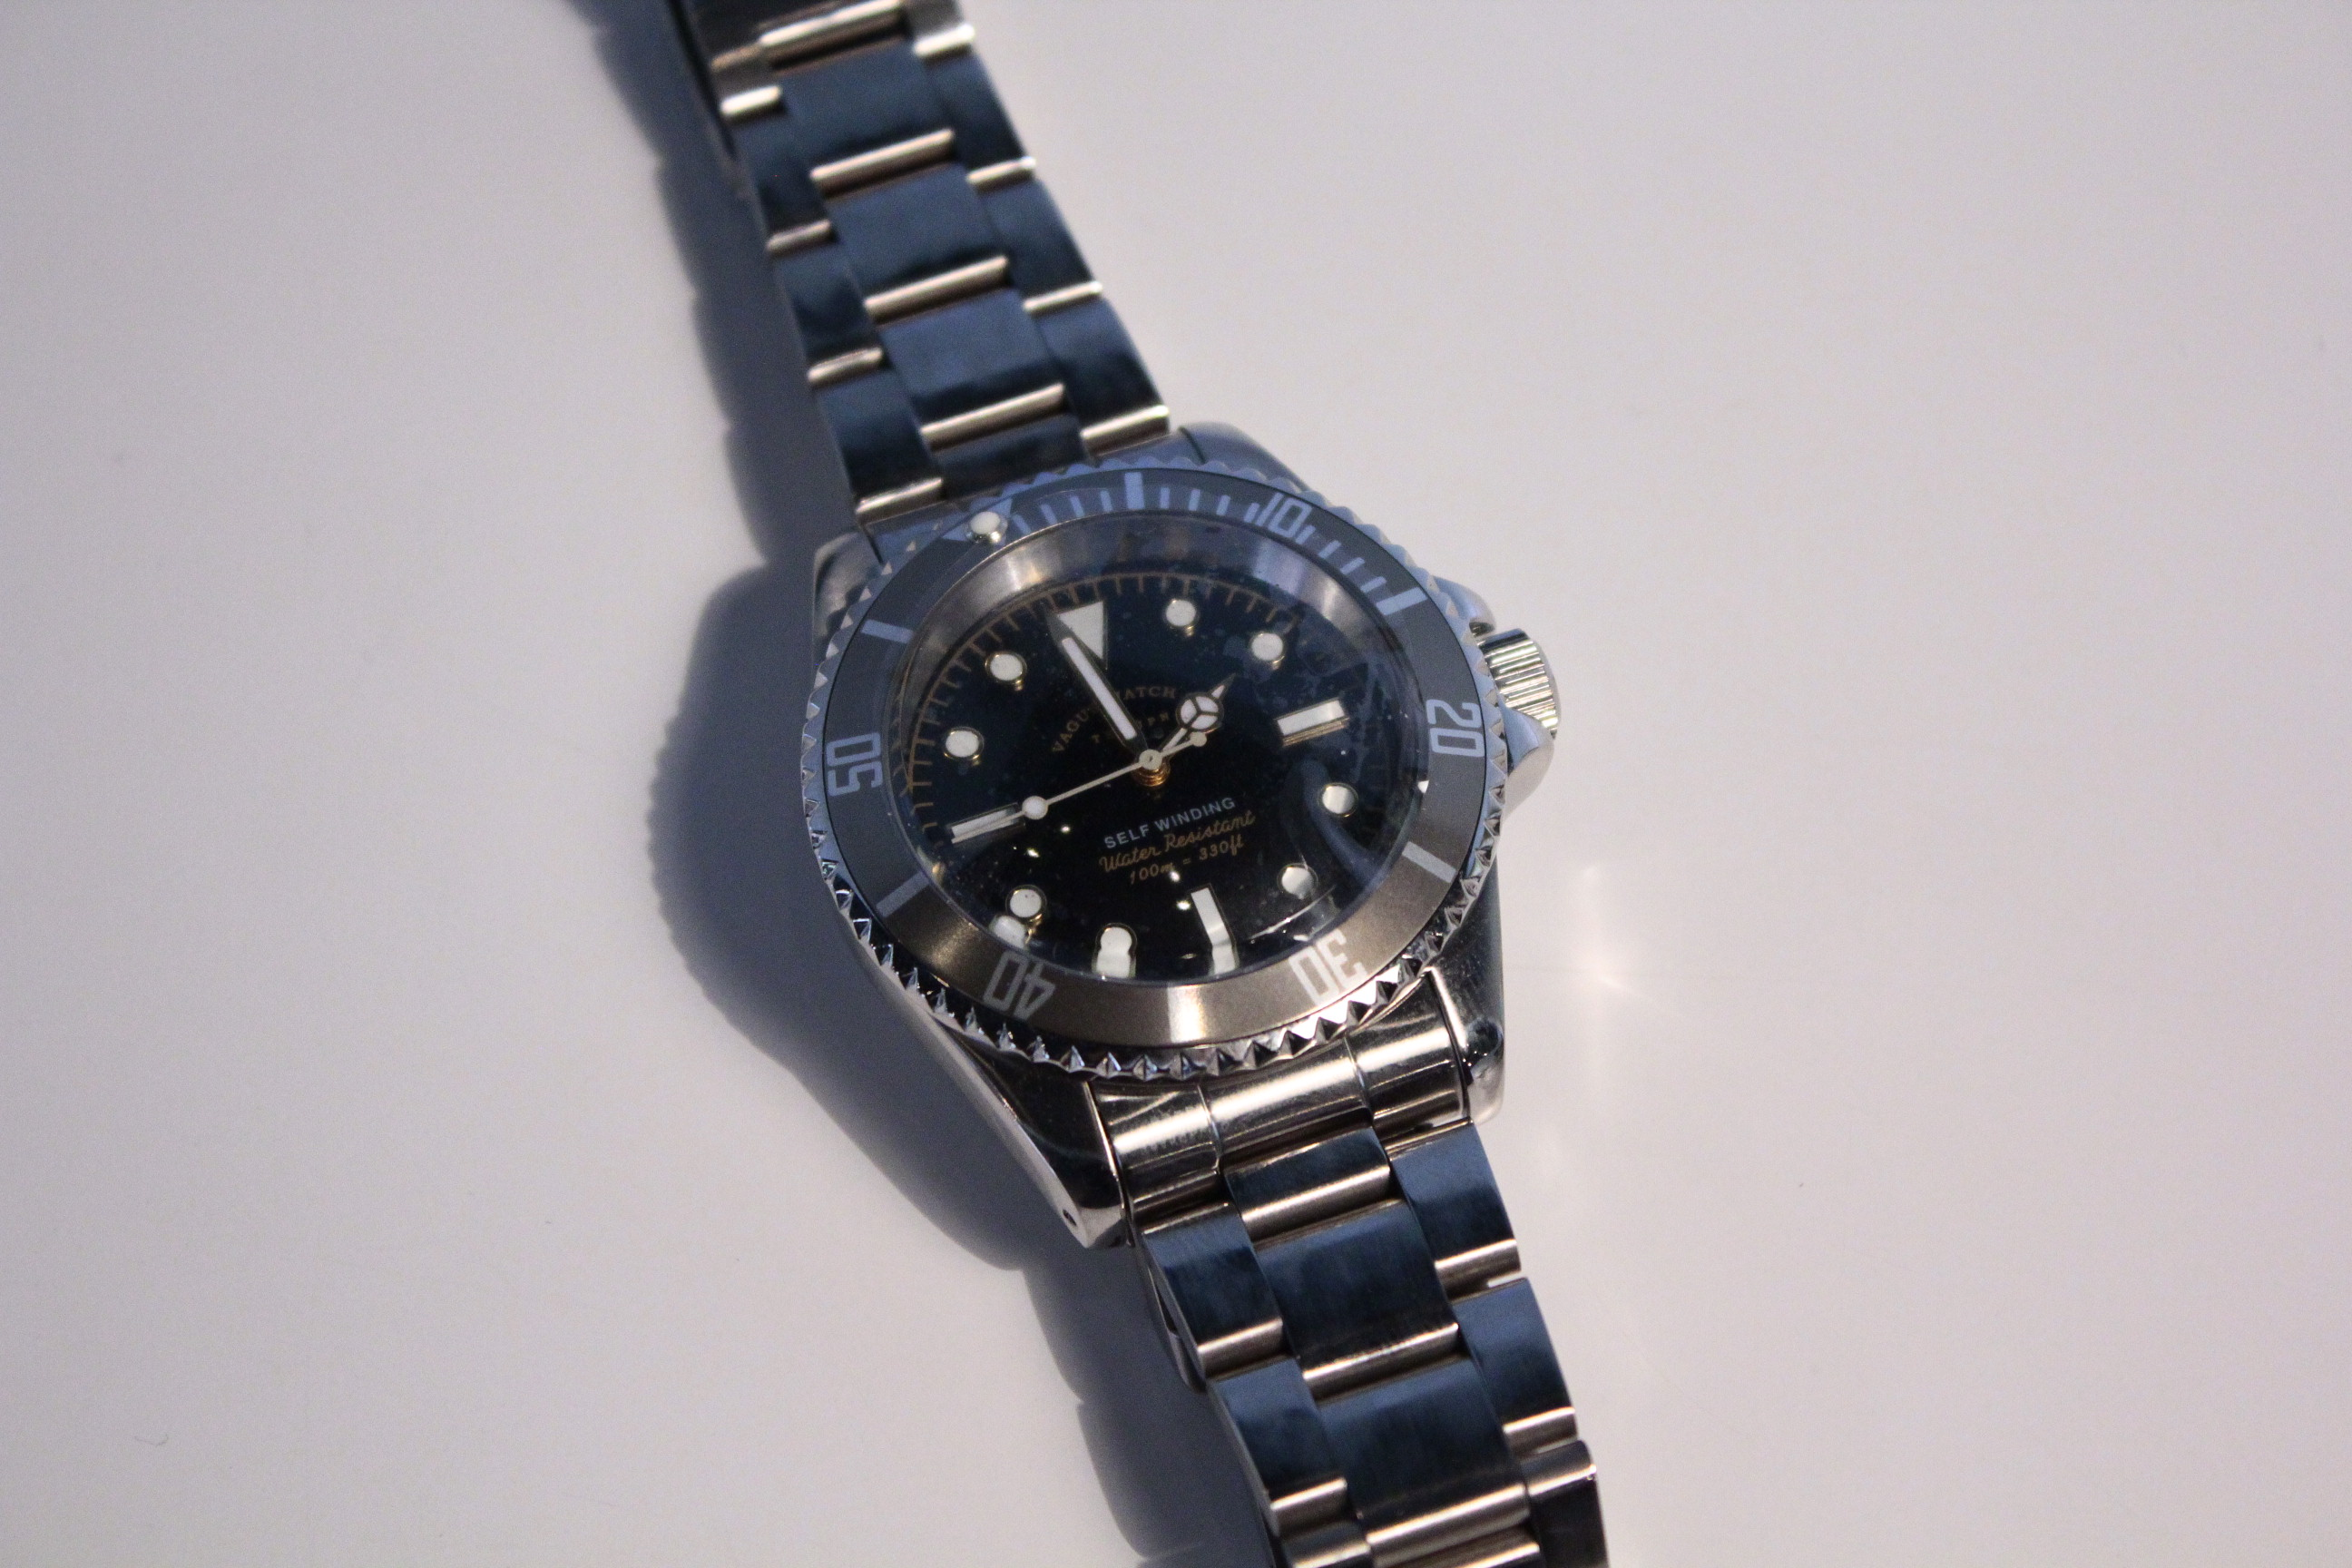 VAGUE WATCH GRY-FAD